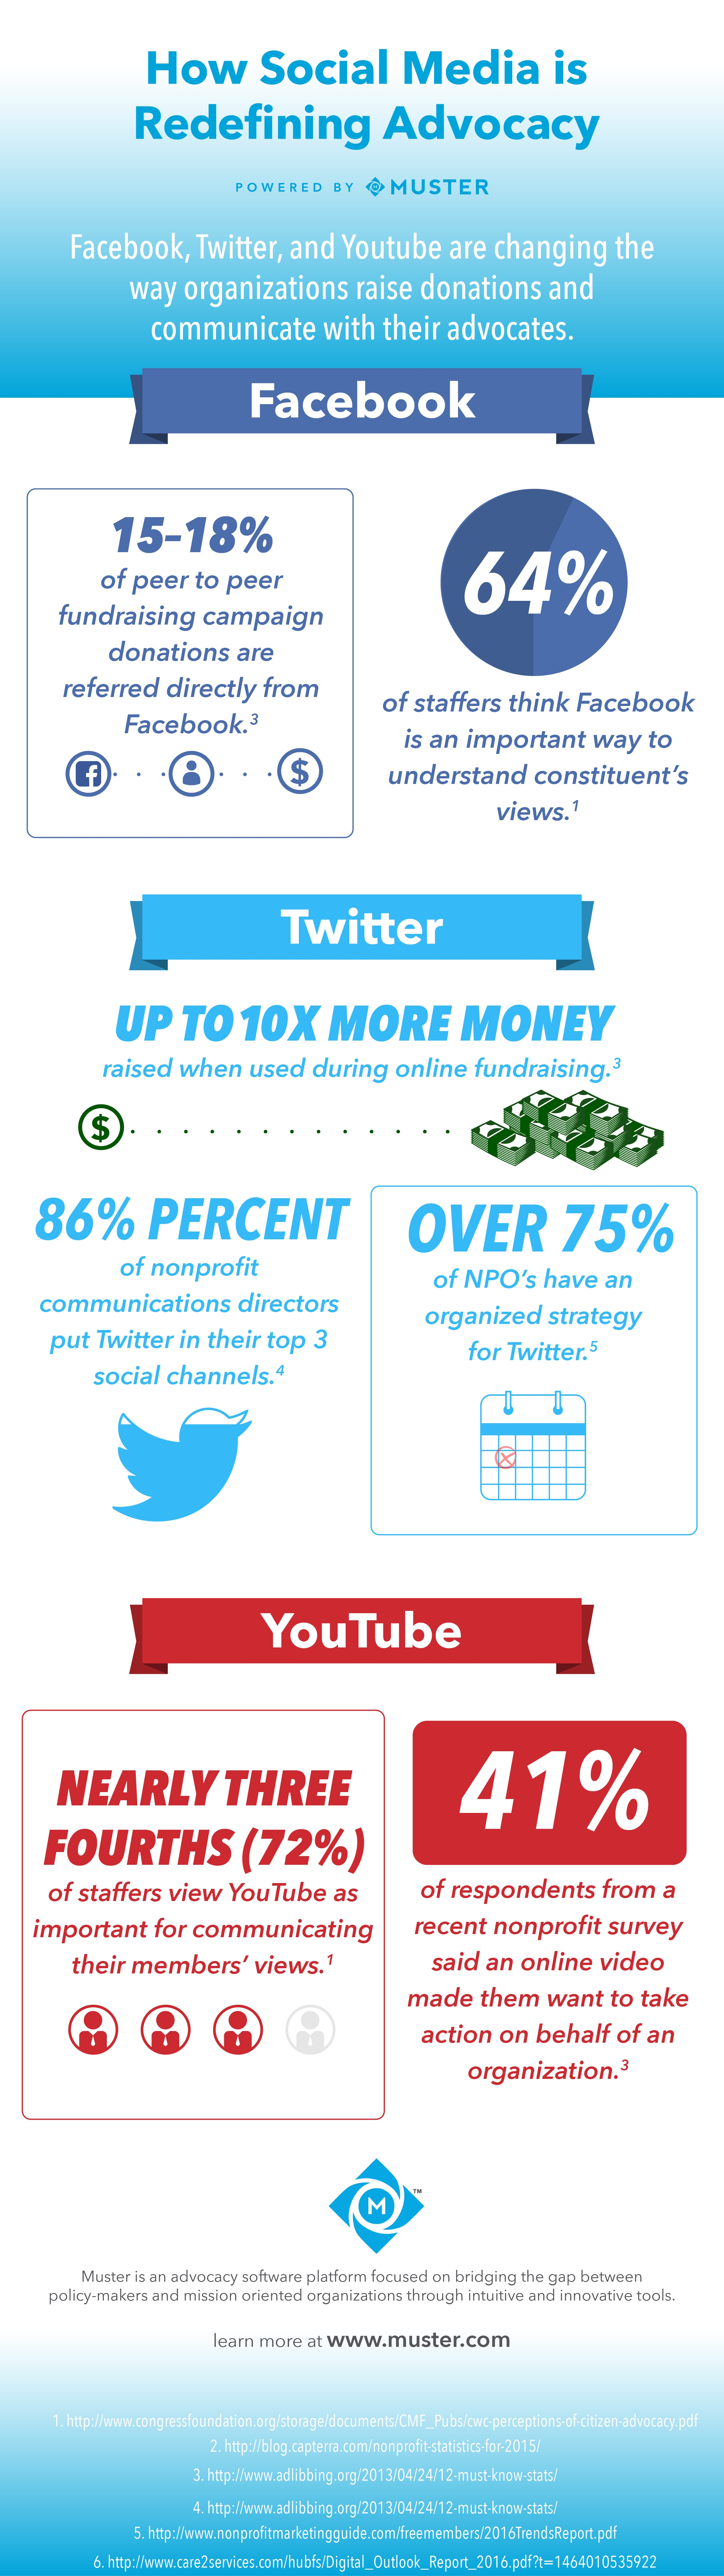 Muster_Social_Media_Advocacy_Infographic.jpg